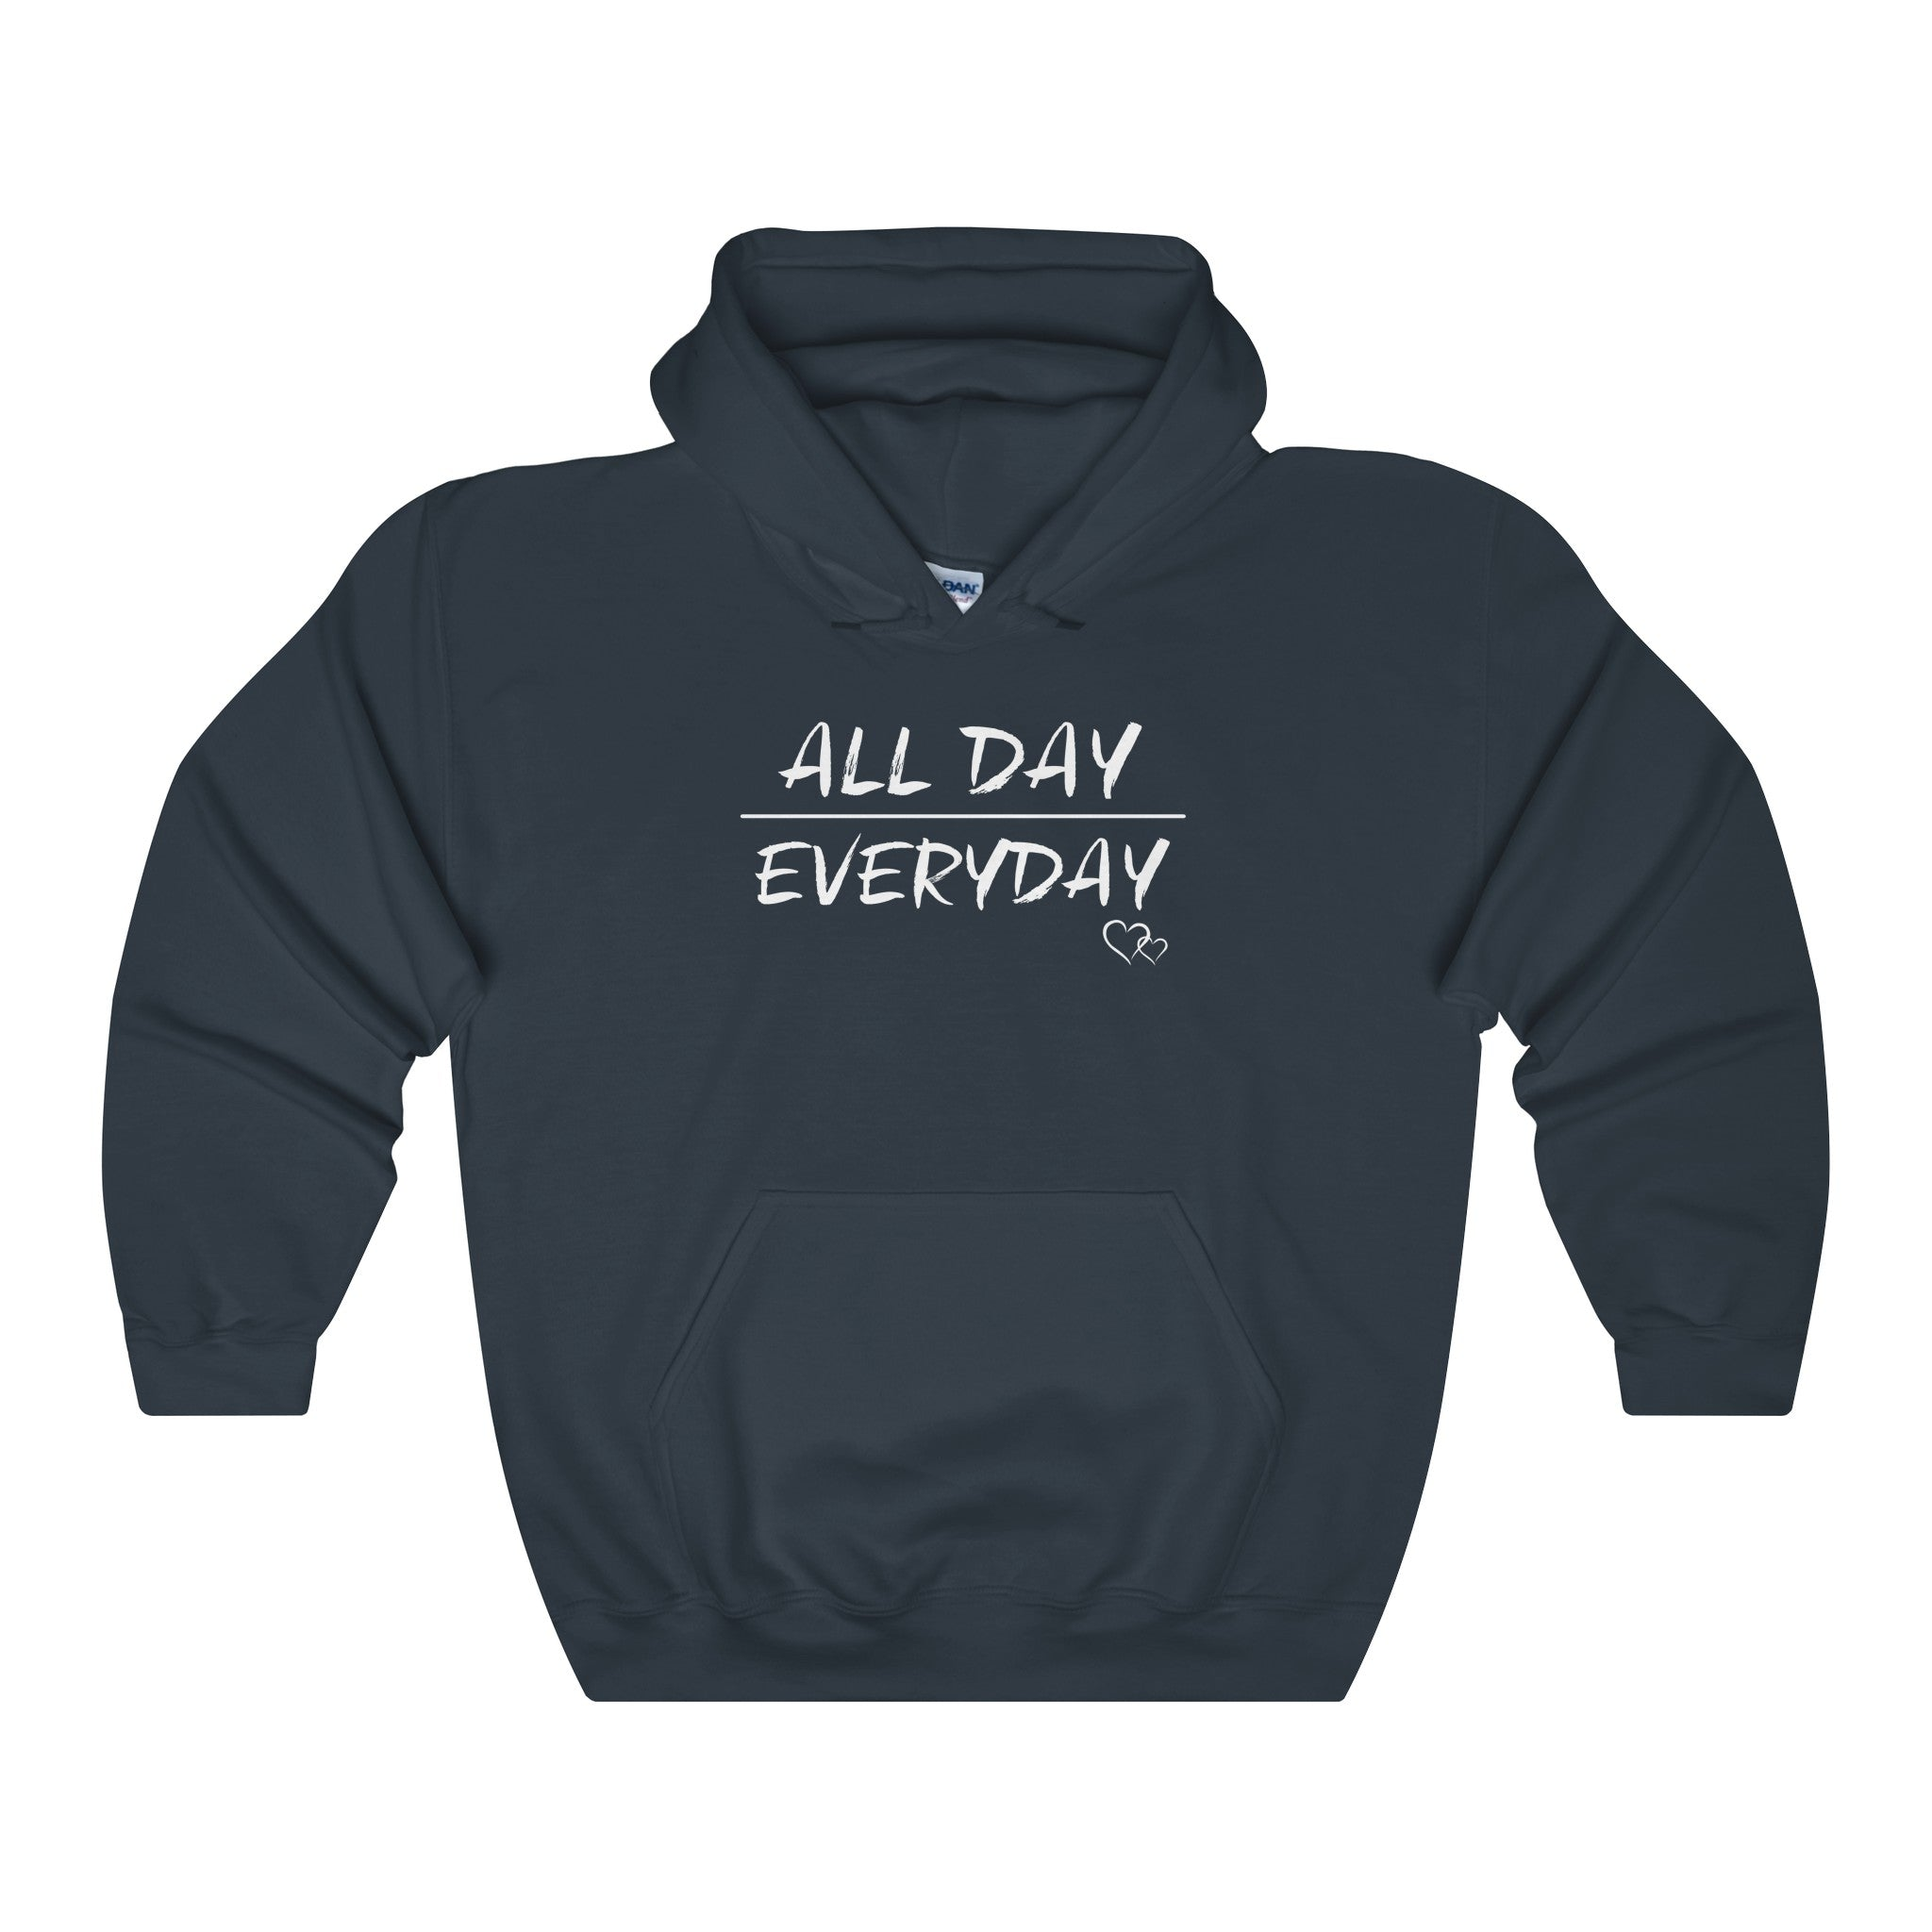 ALL DAY EVERYDAY - Hoodie (Unisex)